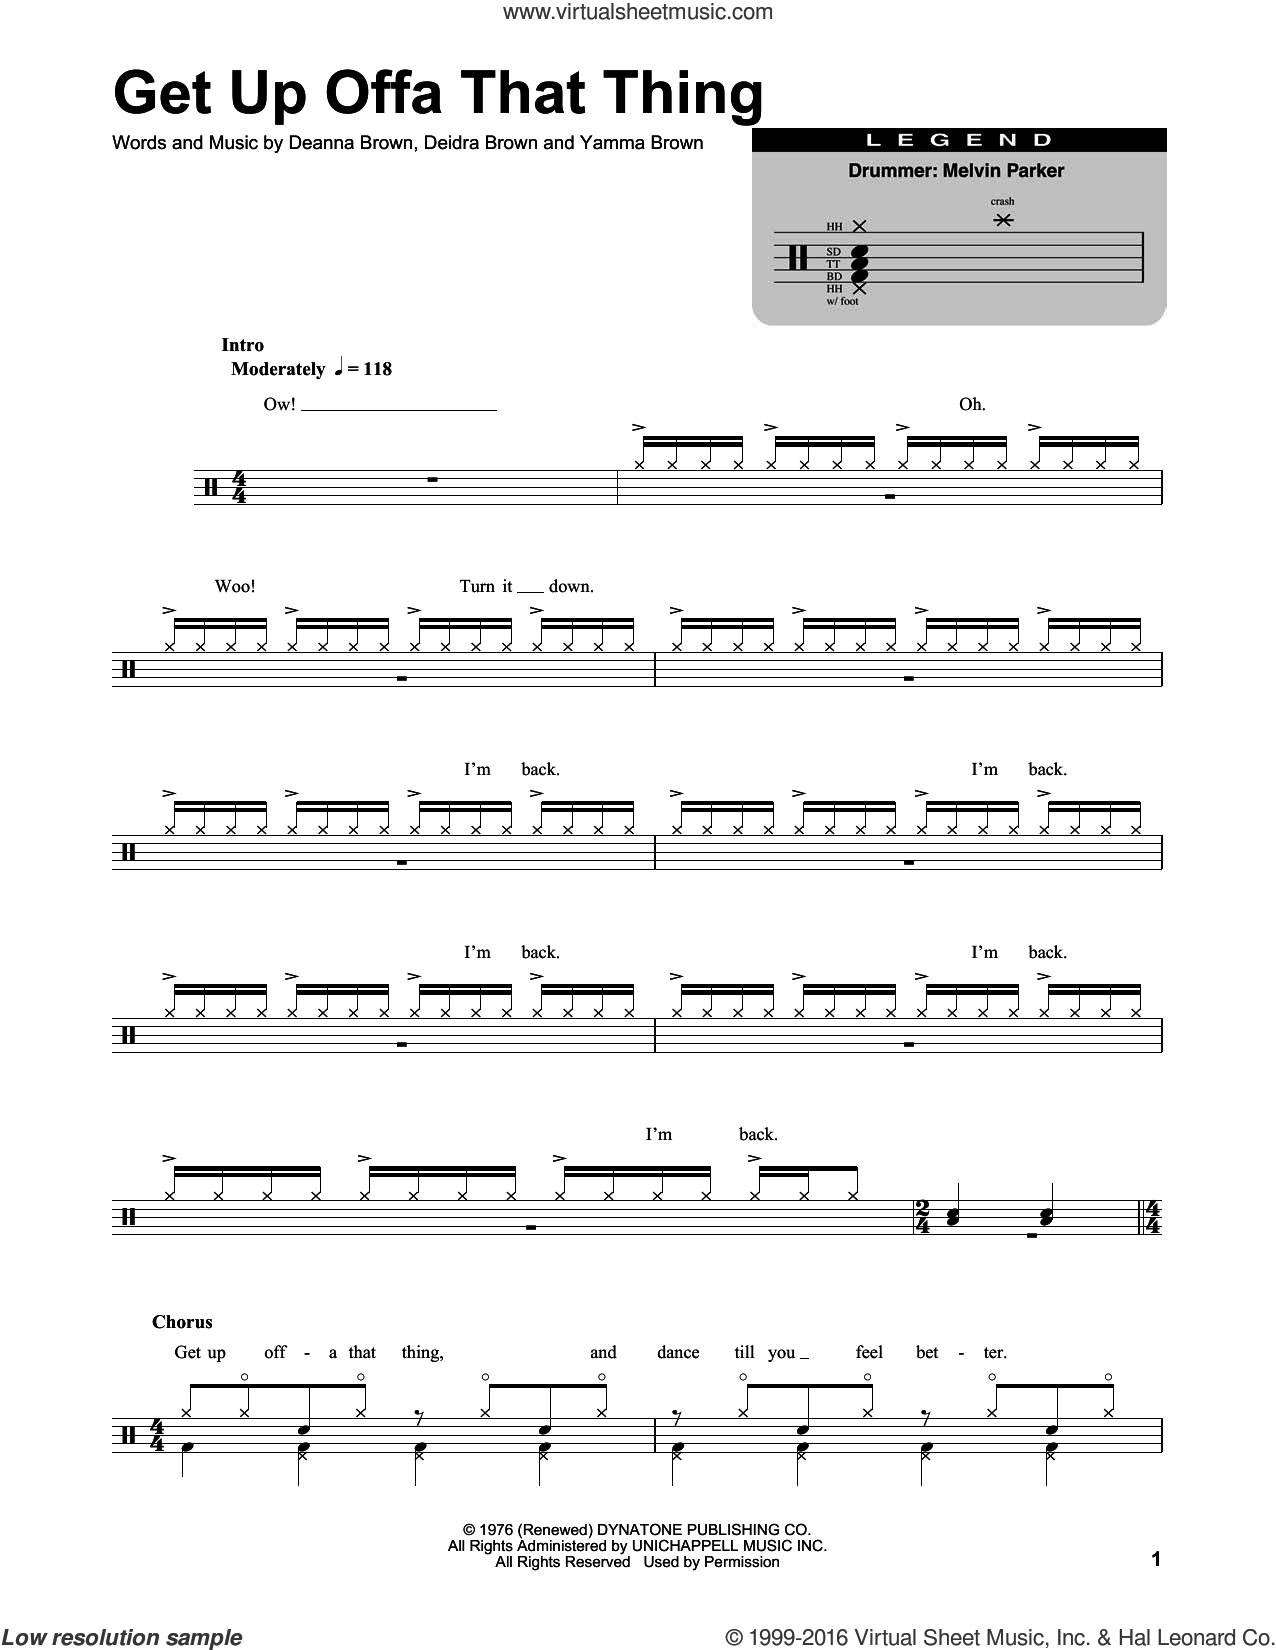 Get Up Offa That Thing sheet music for drums by Yamma Brown